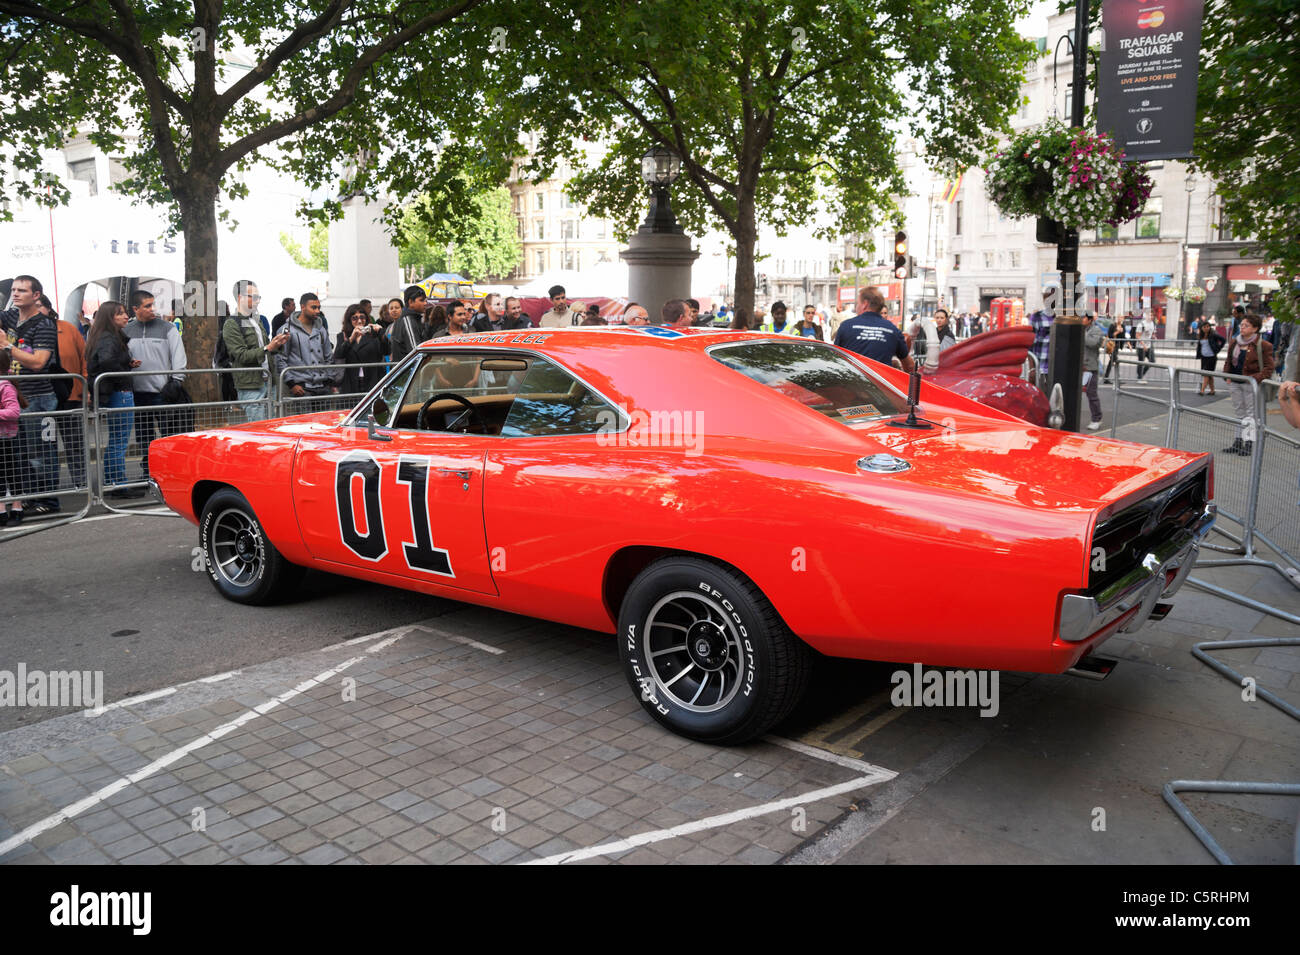 london uk general lee car from the dukes of hazzard tv series and movie in trafalgar square